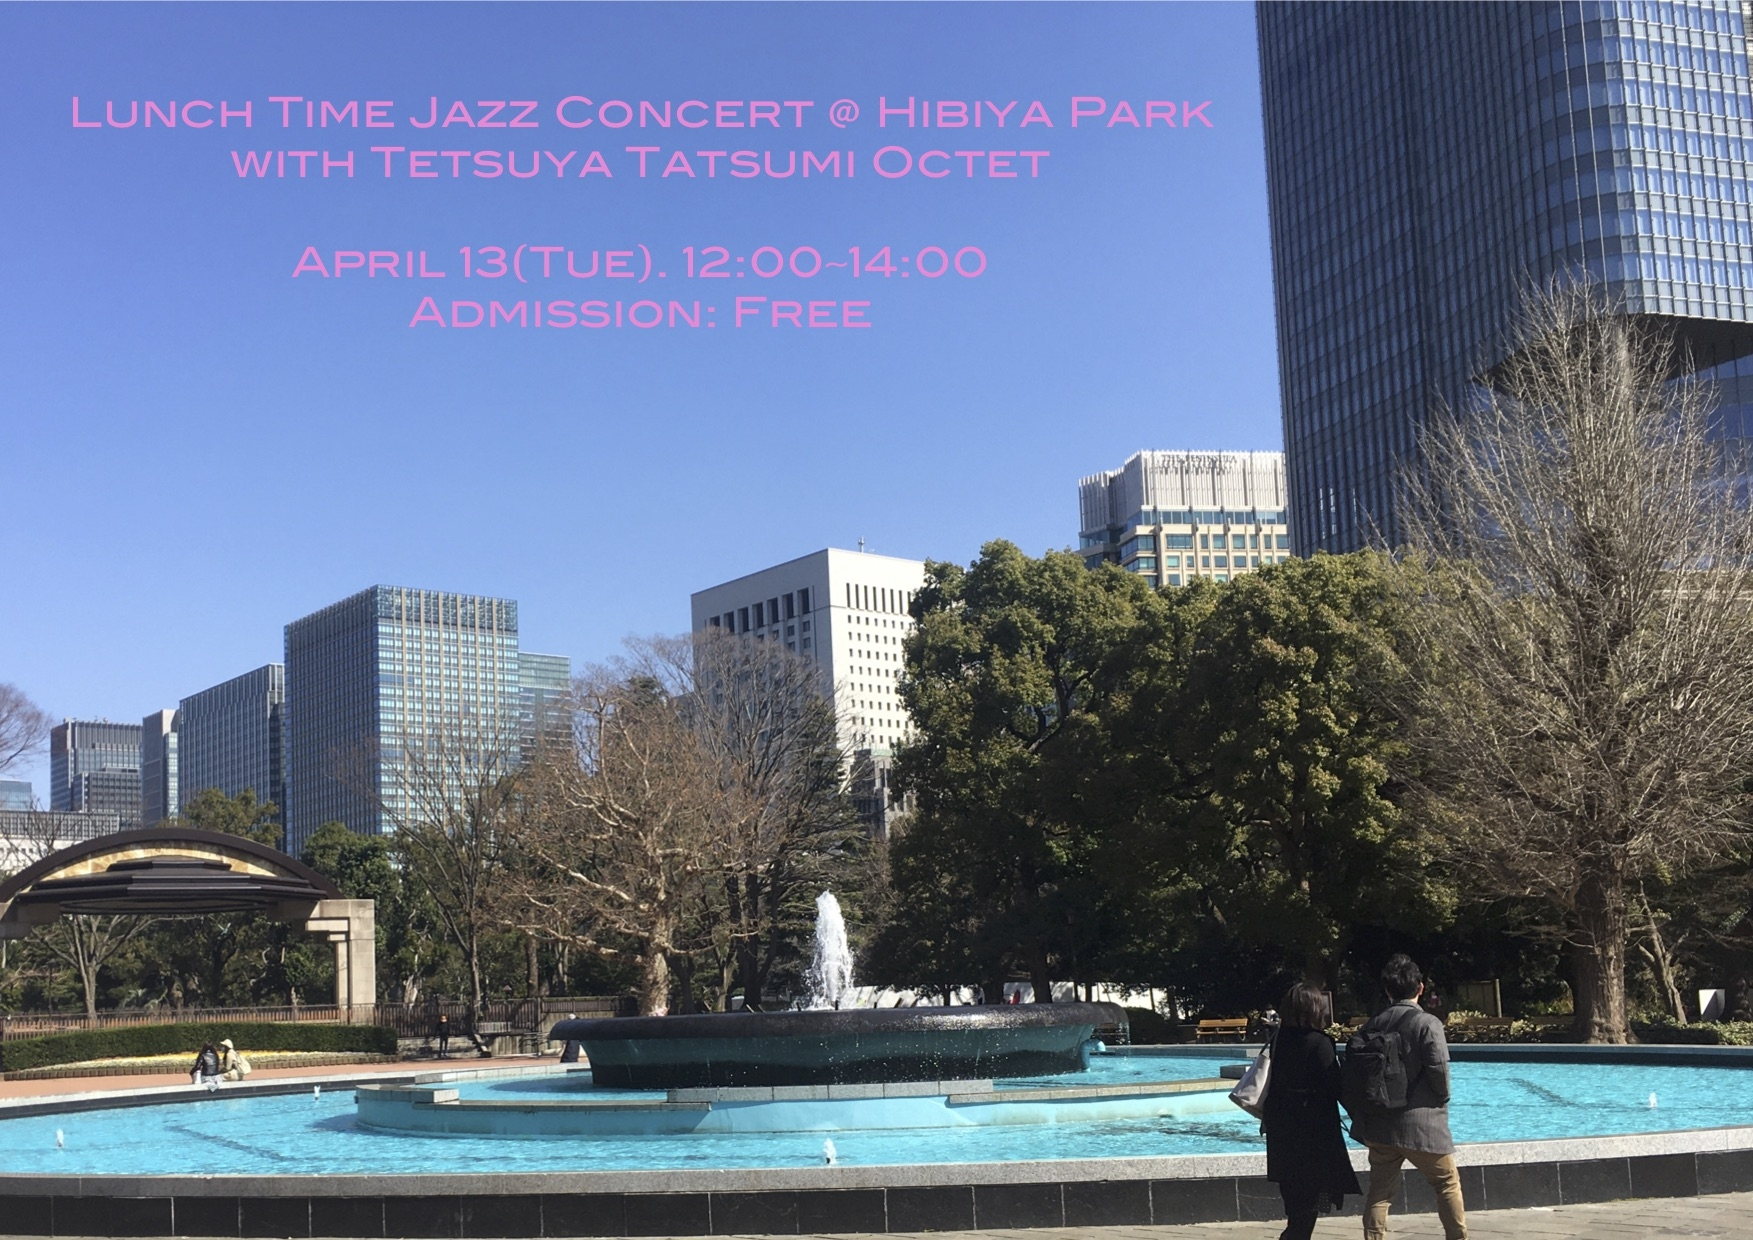 Lunch Time Jazz Concert @  Hibiya Park